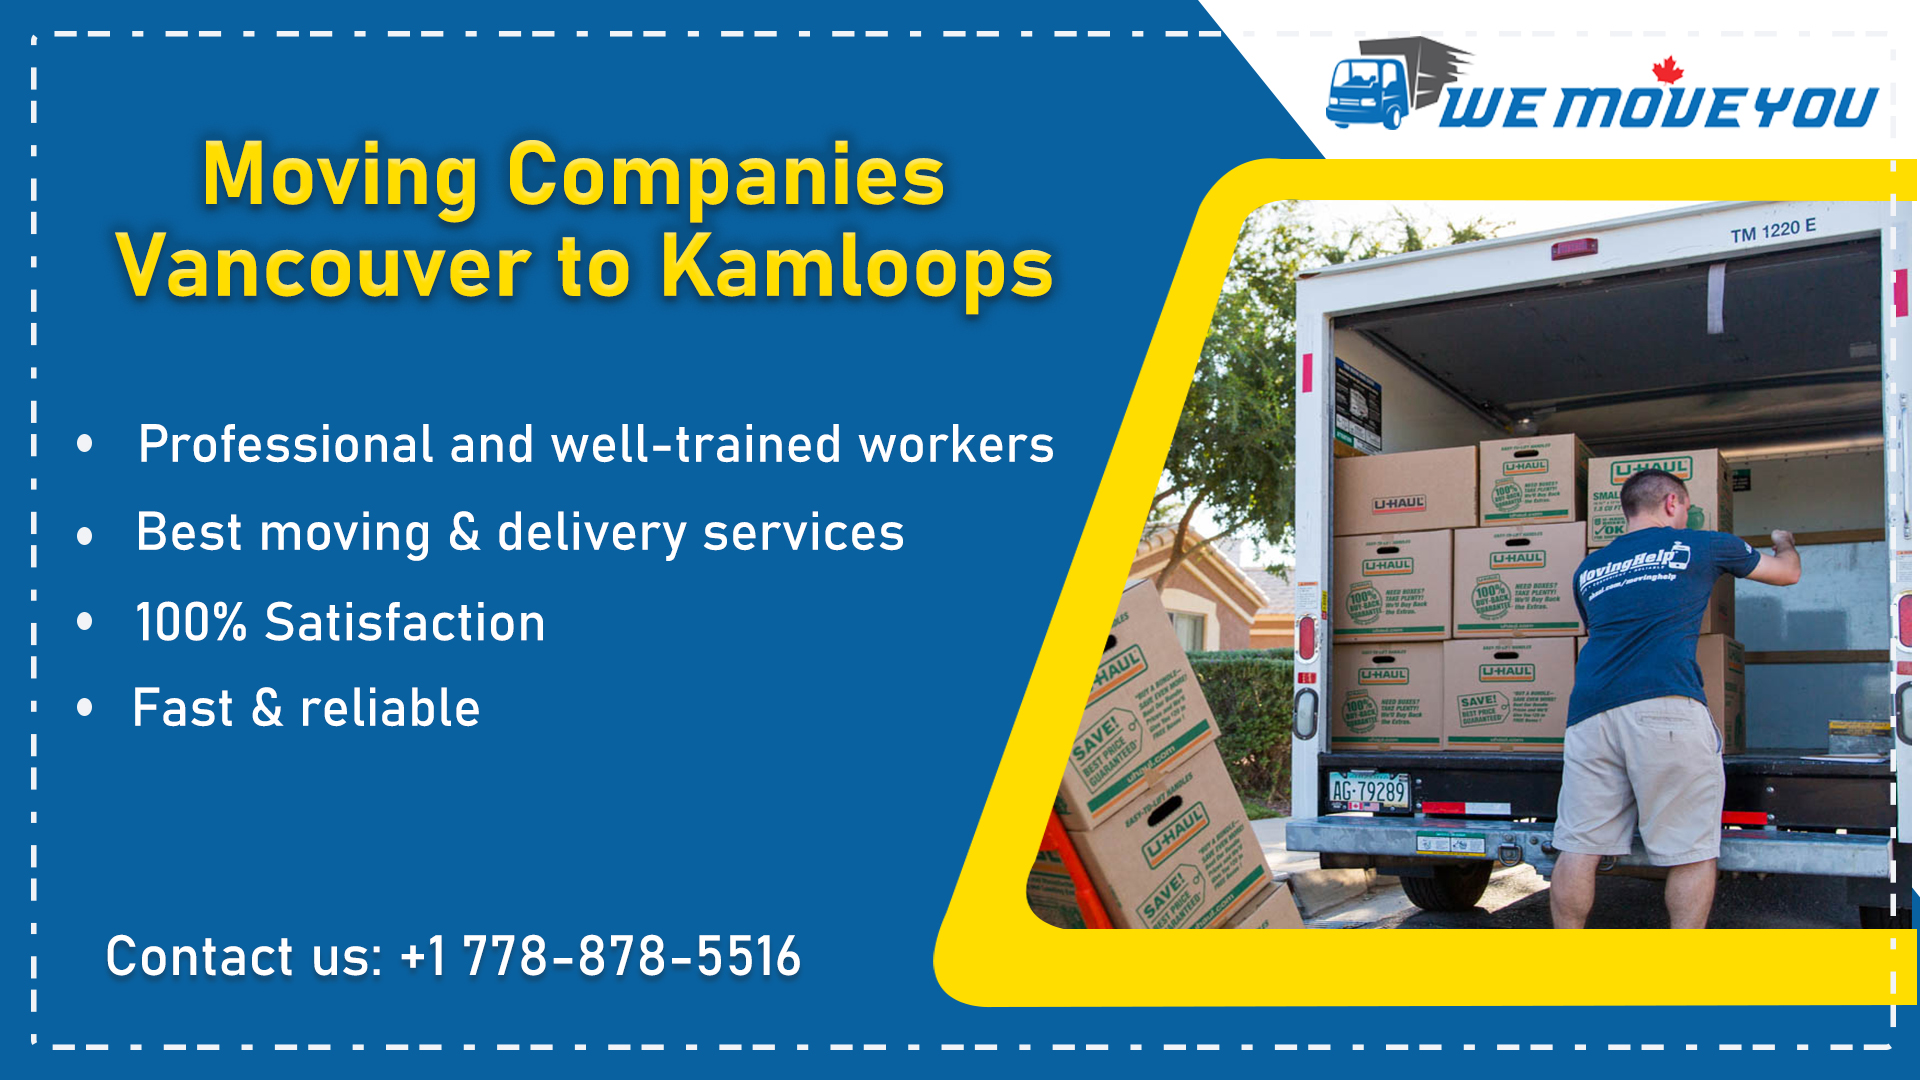 Moving Companies Vancouver to Kamloops